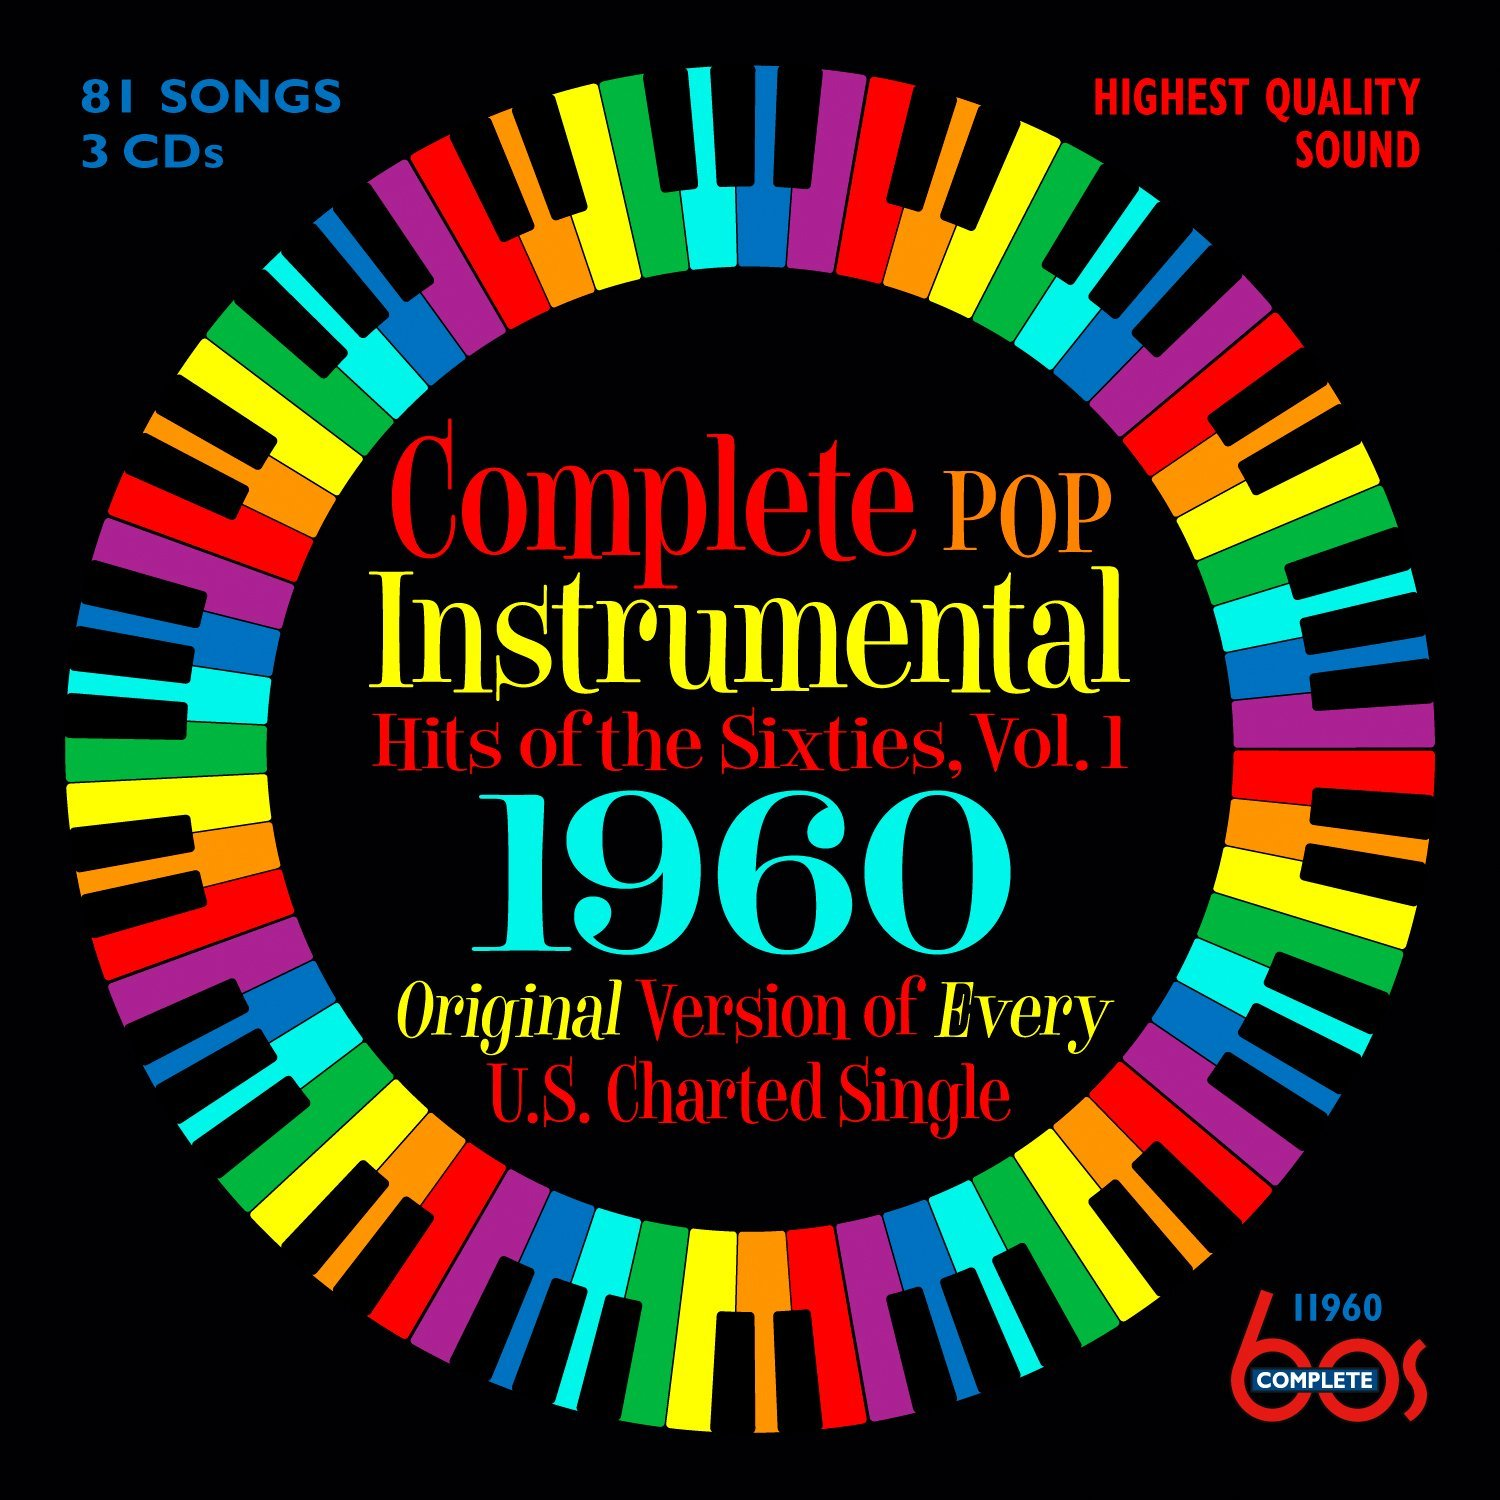 Complete Pop Instrumental Hits Of The Sixties, Vol. 1 1960 by Unknown